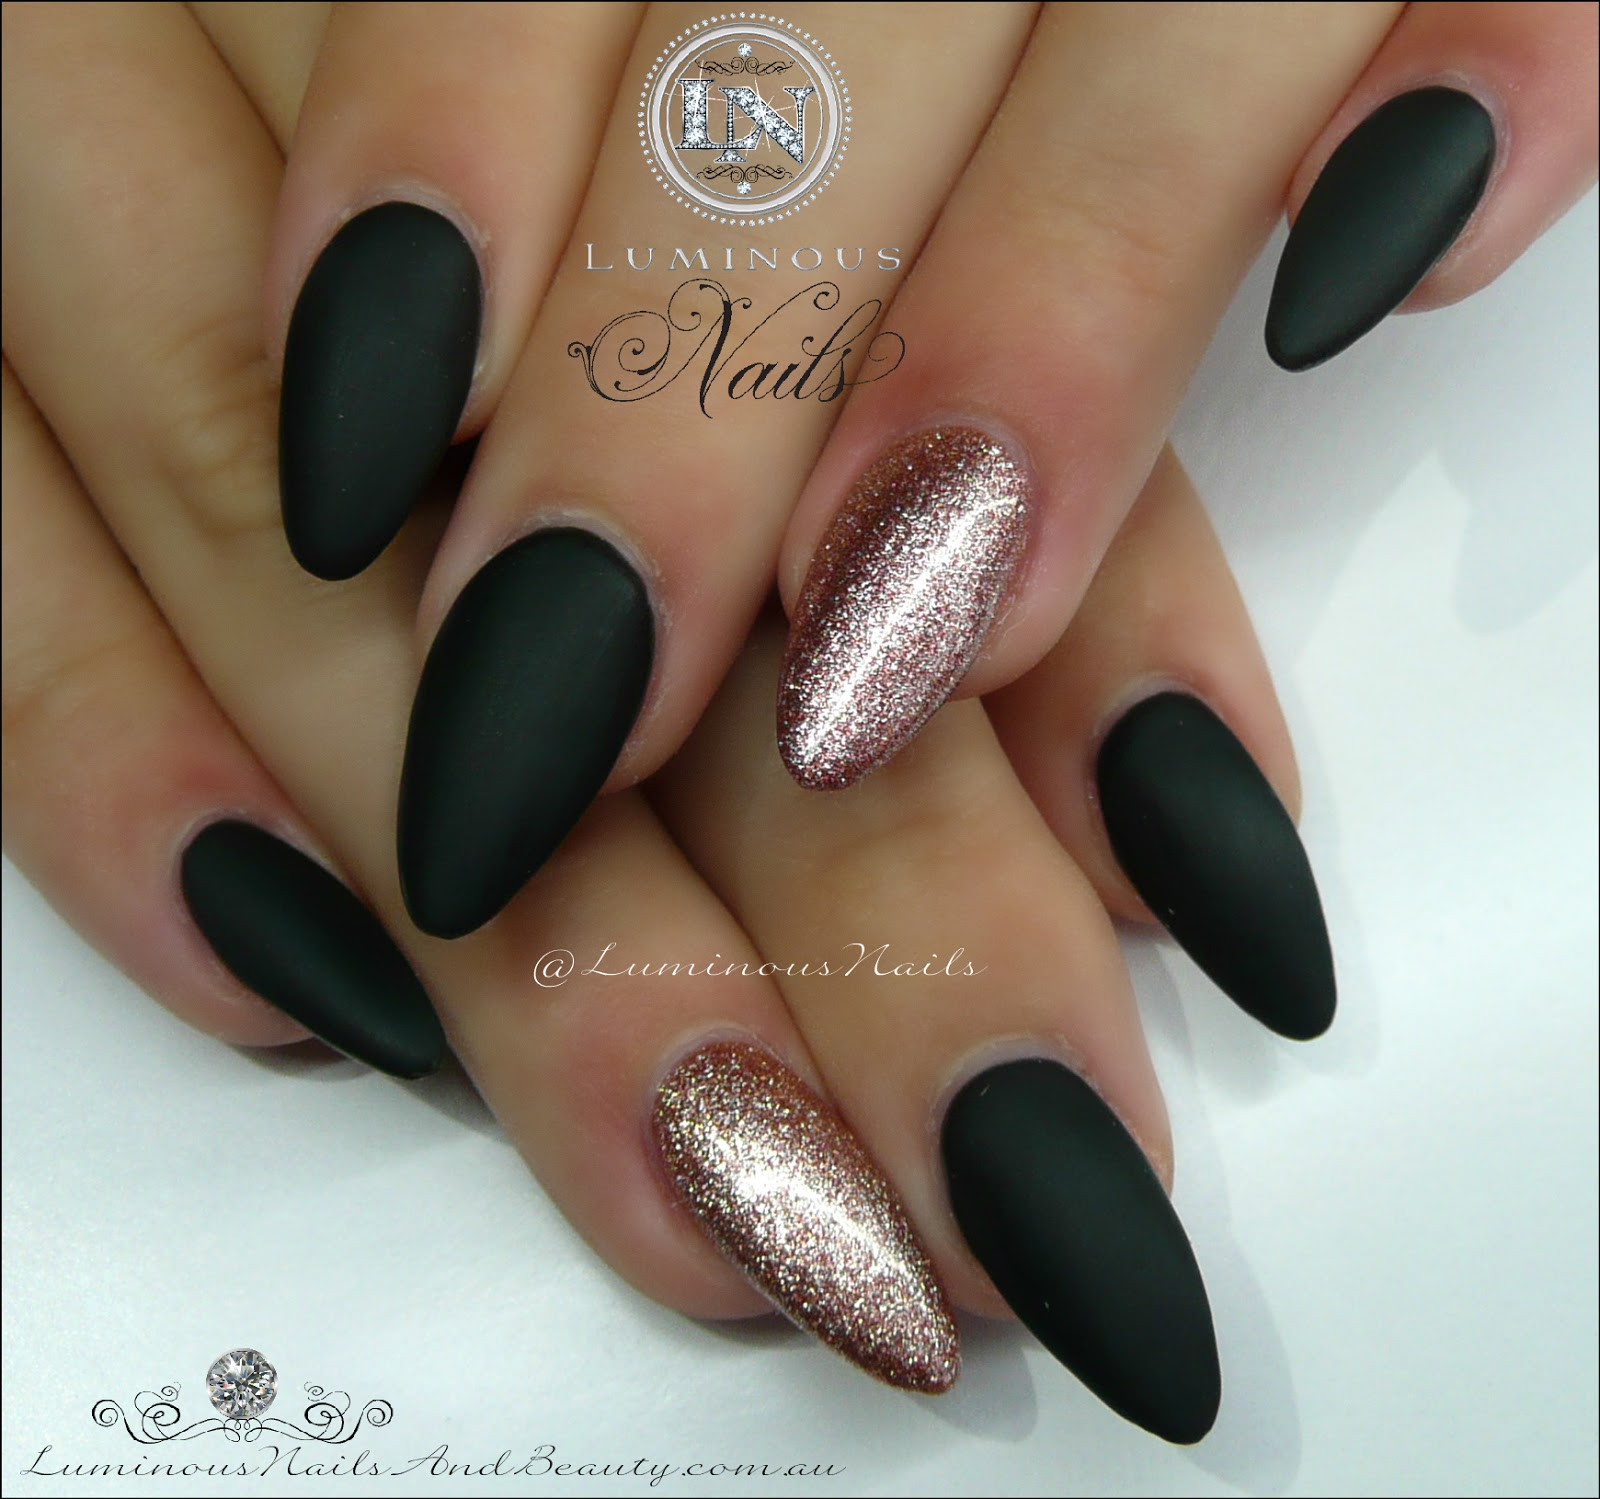 Luminous Nails: Matt Black & Rose Gold... Acrylic & Gel Nails